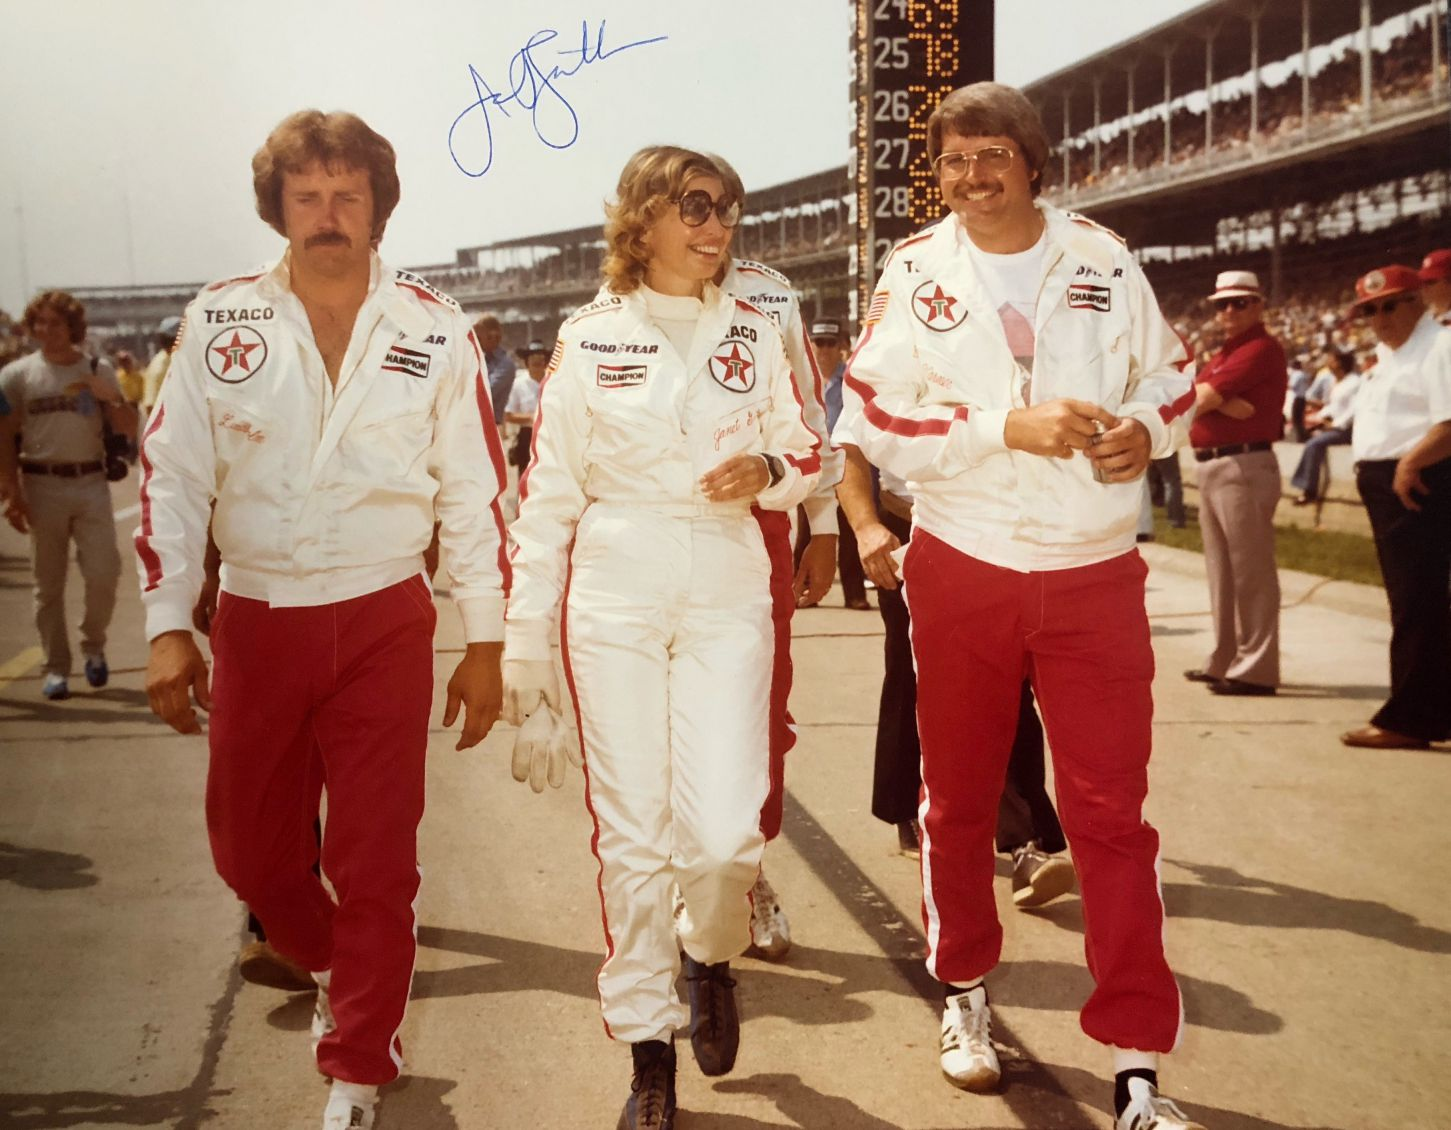 Janet Guthrie at Indianapolis. [Paul Gohde Photo]